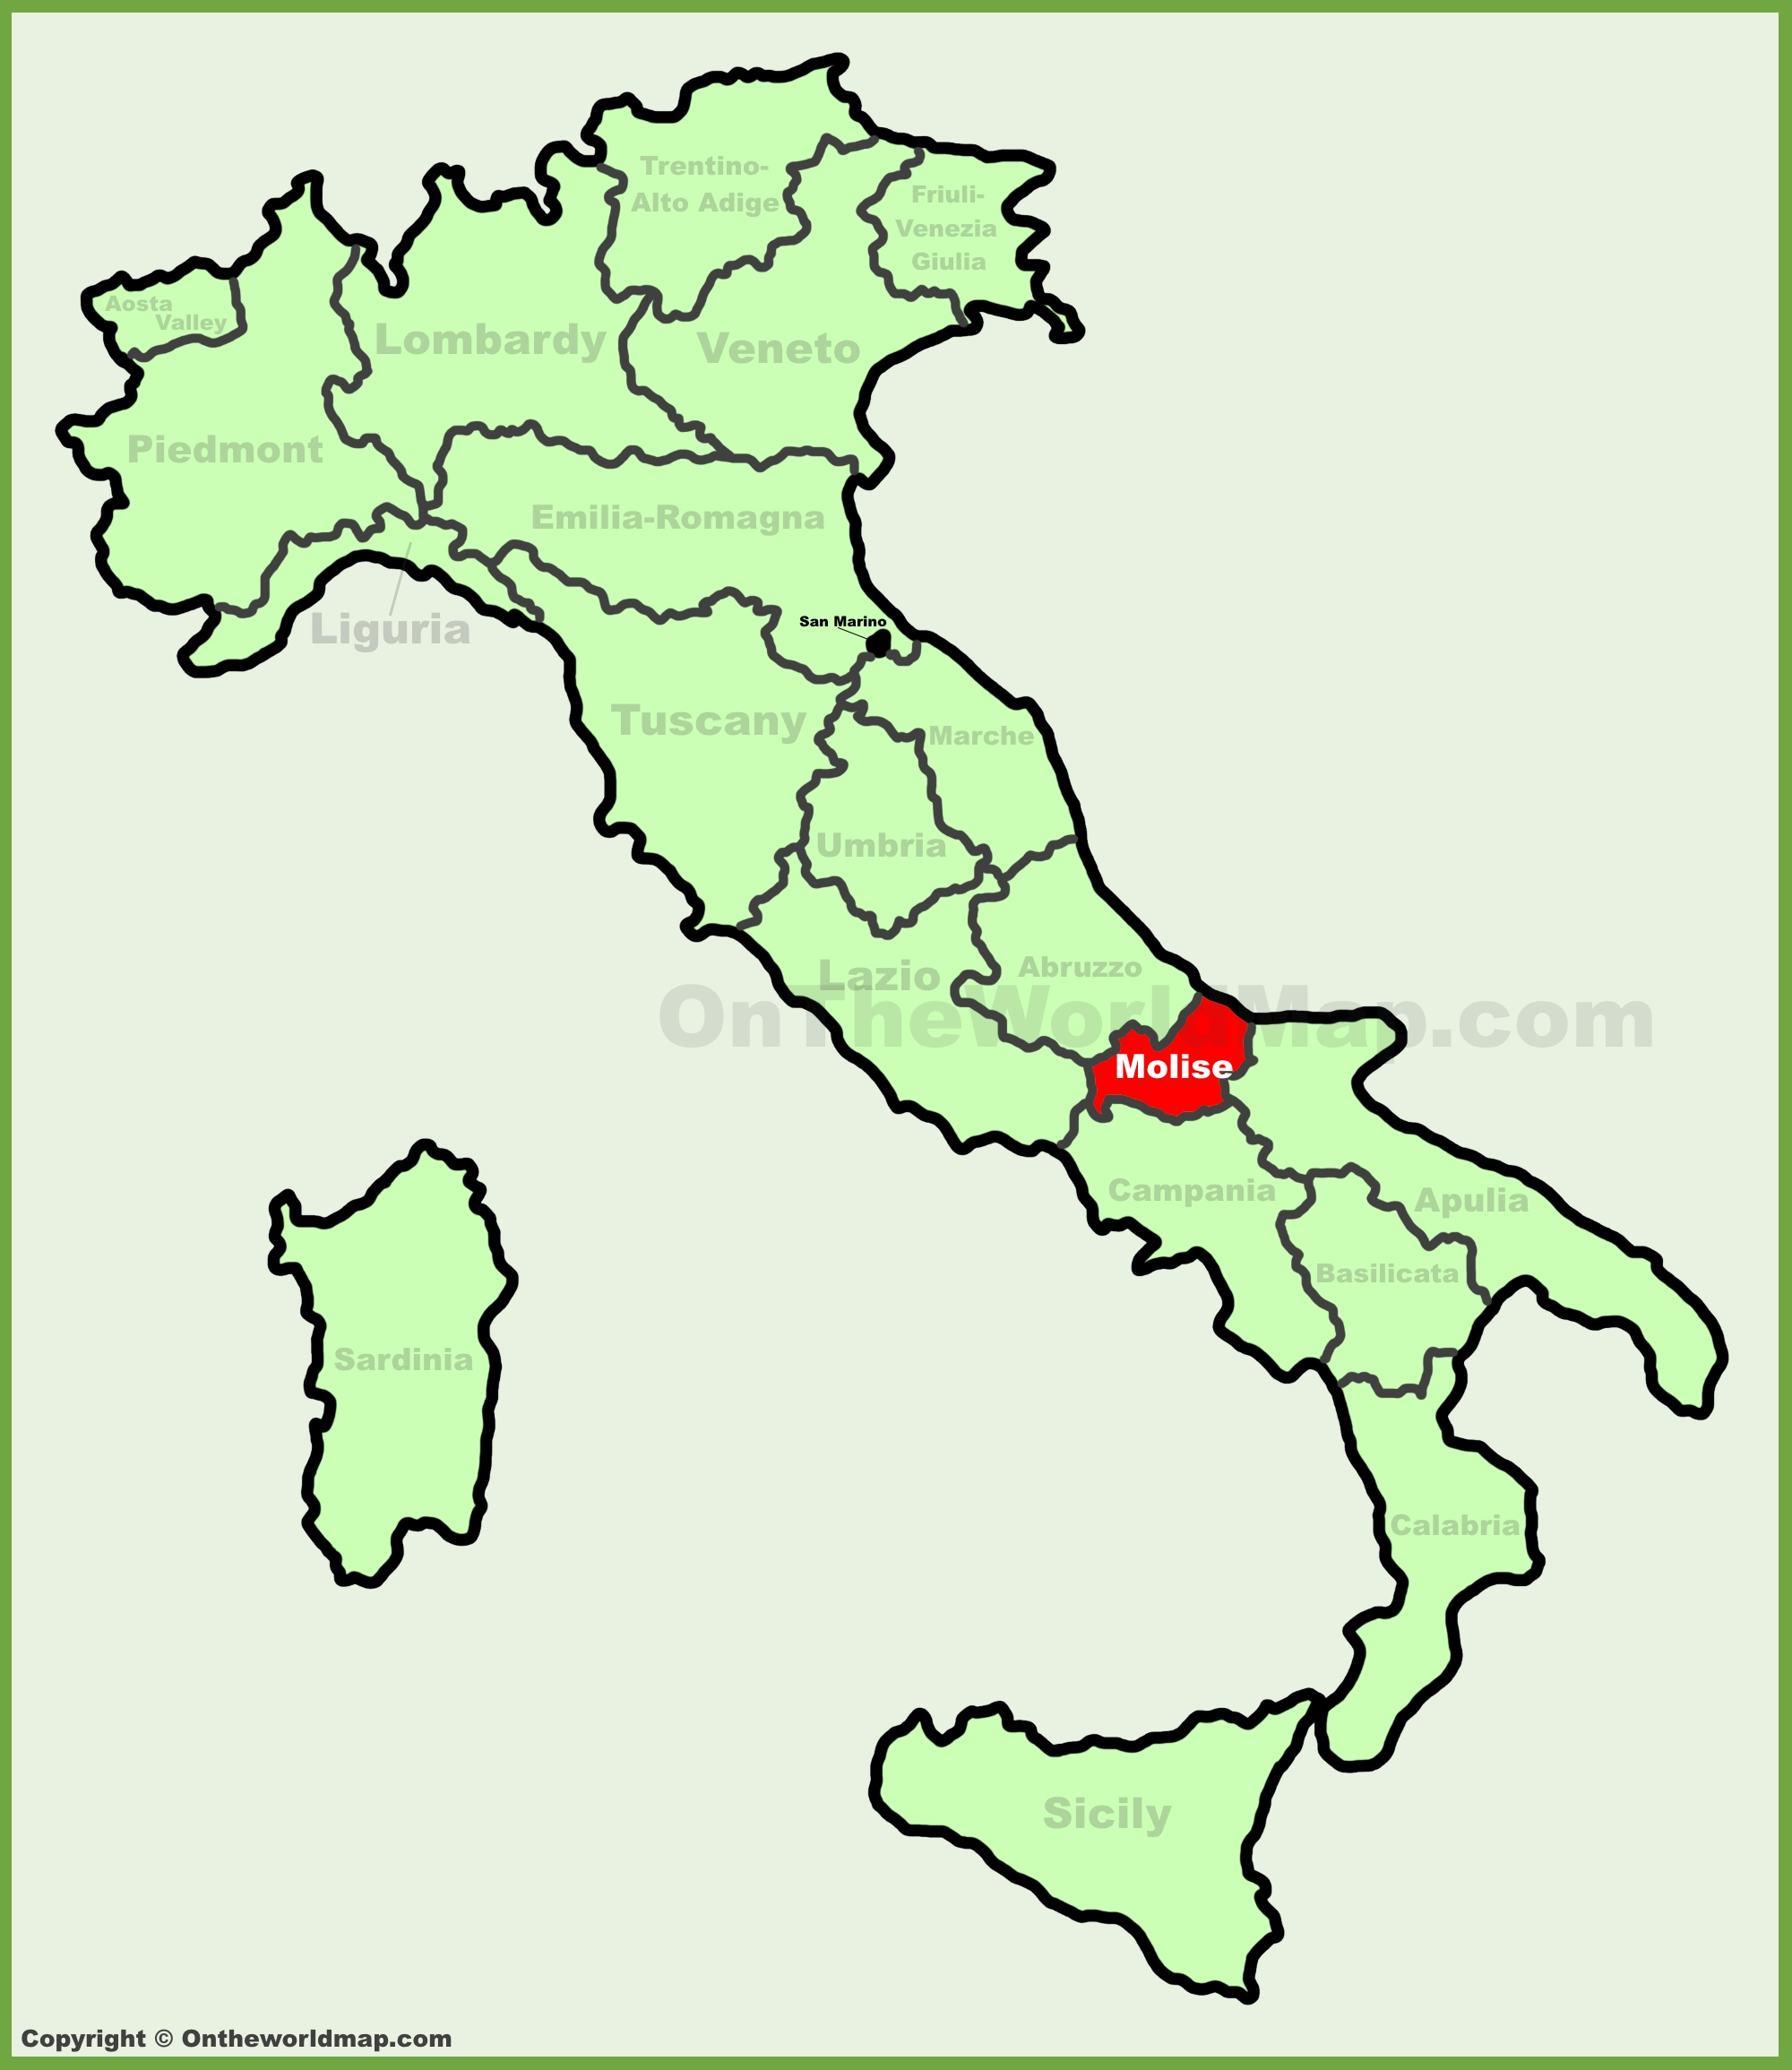 Molise location on the Italy map